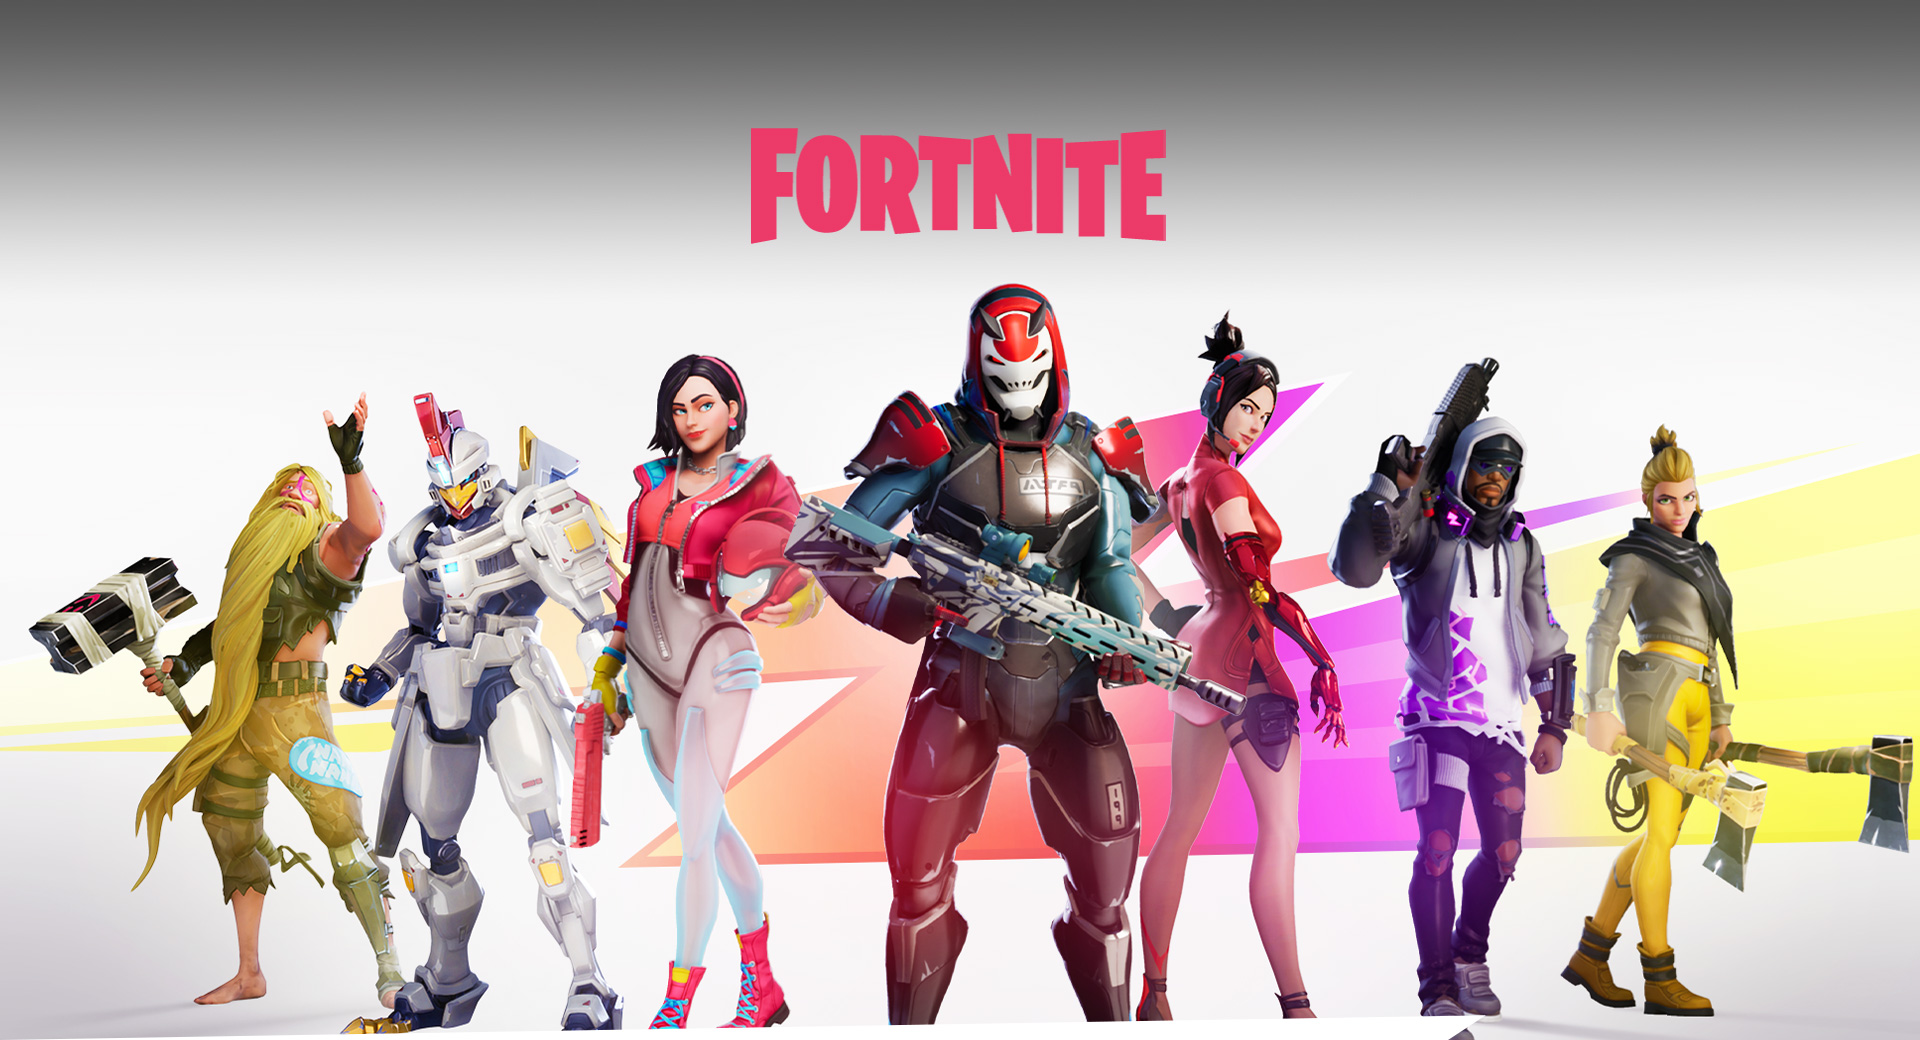 xbox Fortnight guide: 5 Fortnite characters standing in front of the Fortnite logo